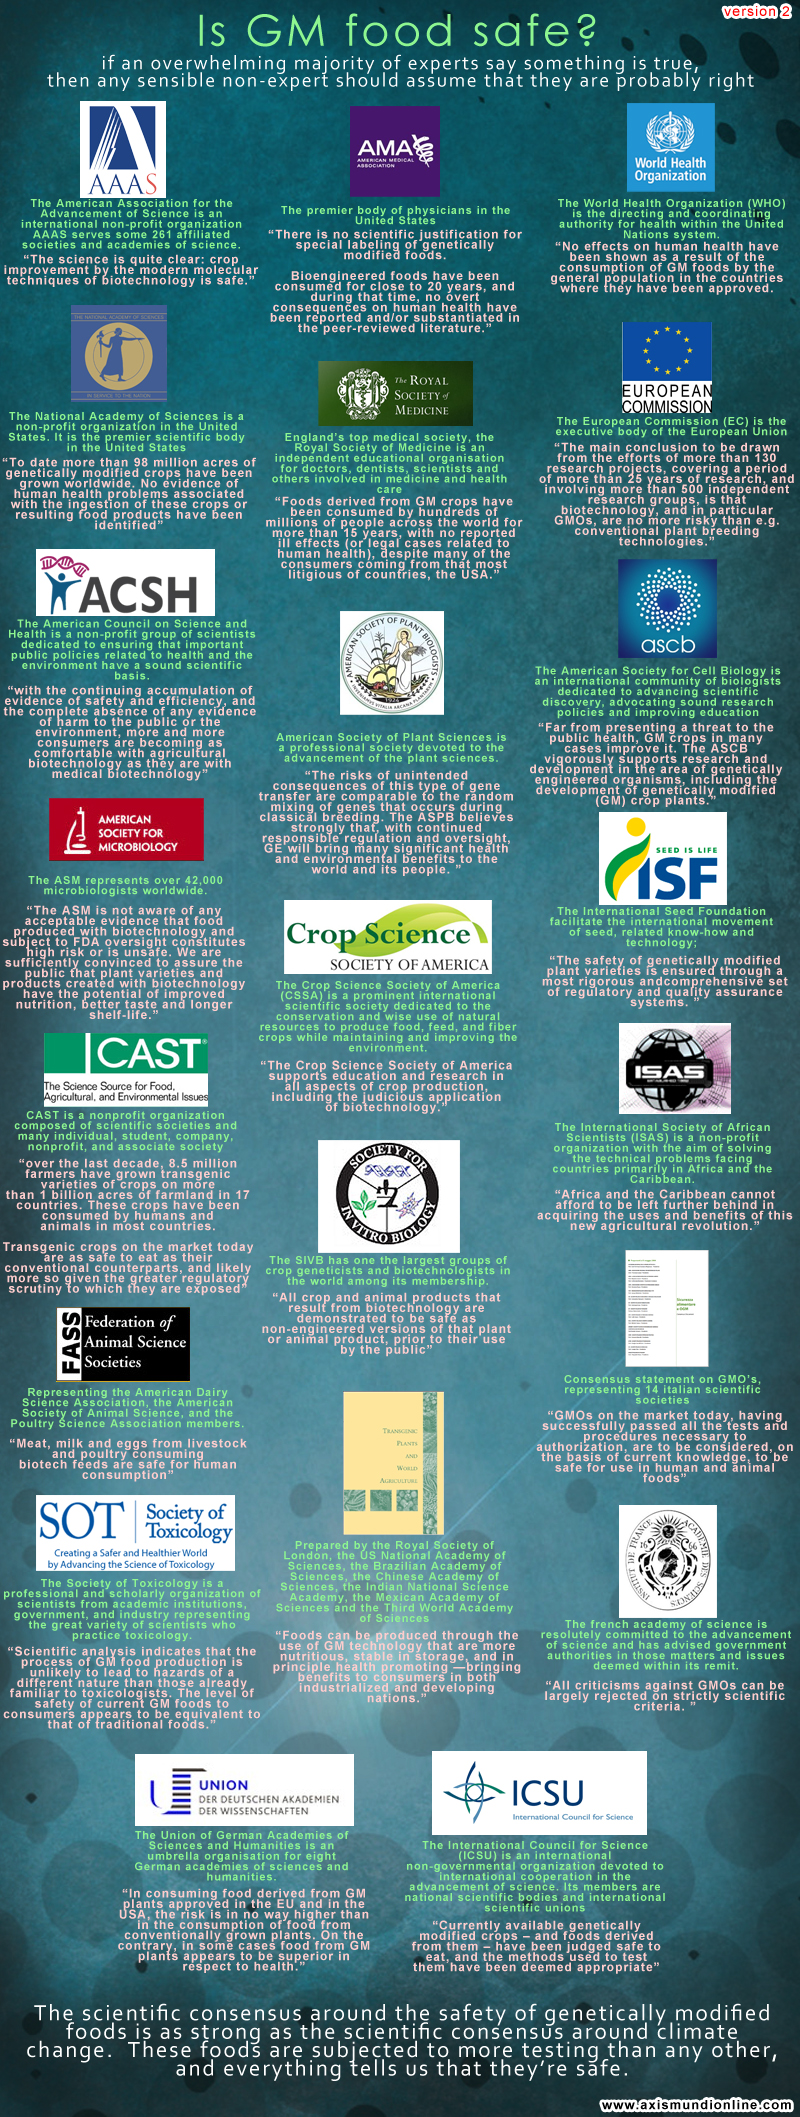 the growing concerns over the safety of gm foods